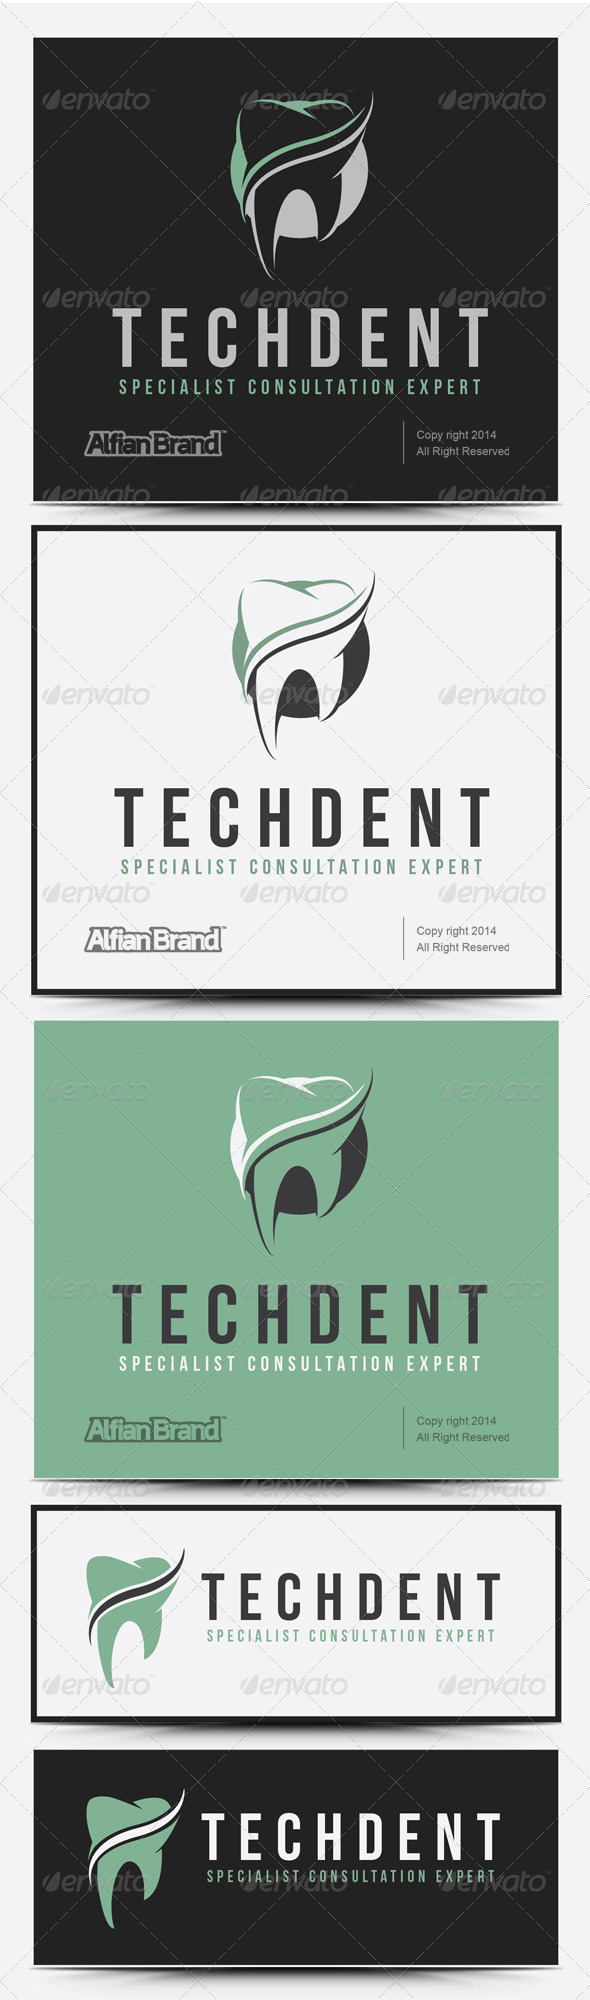 GraphicRiver Tech Dent Logo 8066290